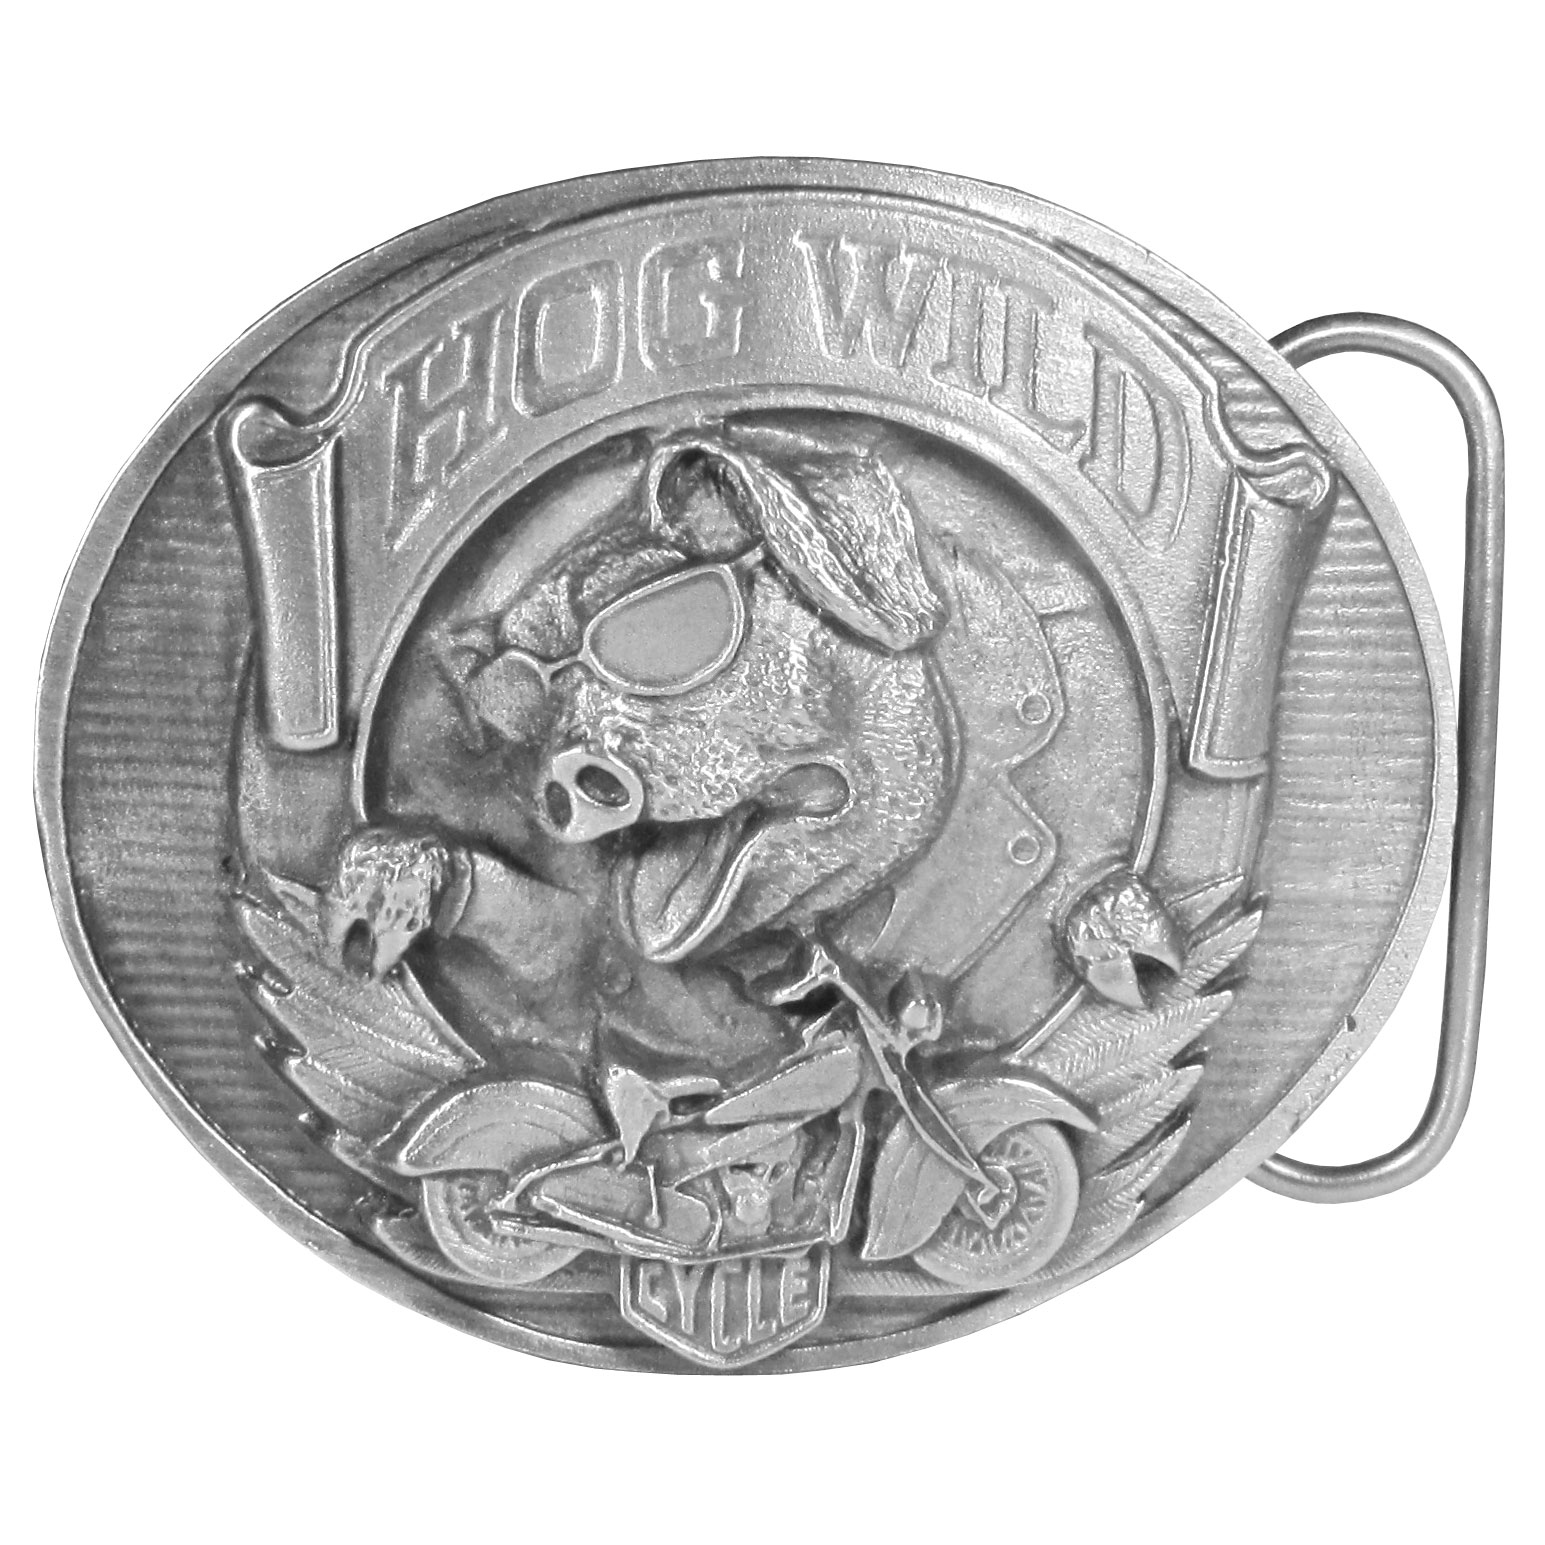 "Hog Wild Antiqued Belt Buckle - ""This belt buckle has the words """"Hog Wild"""" written in bold on a banner across the top.  There is a hog in sunglasses and a motorcycle jacket underneath with a motorcycle and wings and the word """"cycle"""" on the bottom.  This exquisitely carved buckle is made of fully cast metal with a standard bale that fits up to 2"""" belts."""